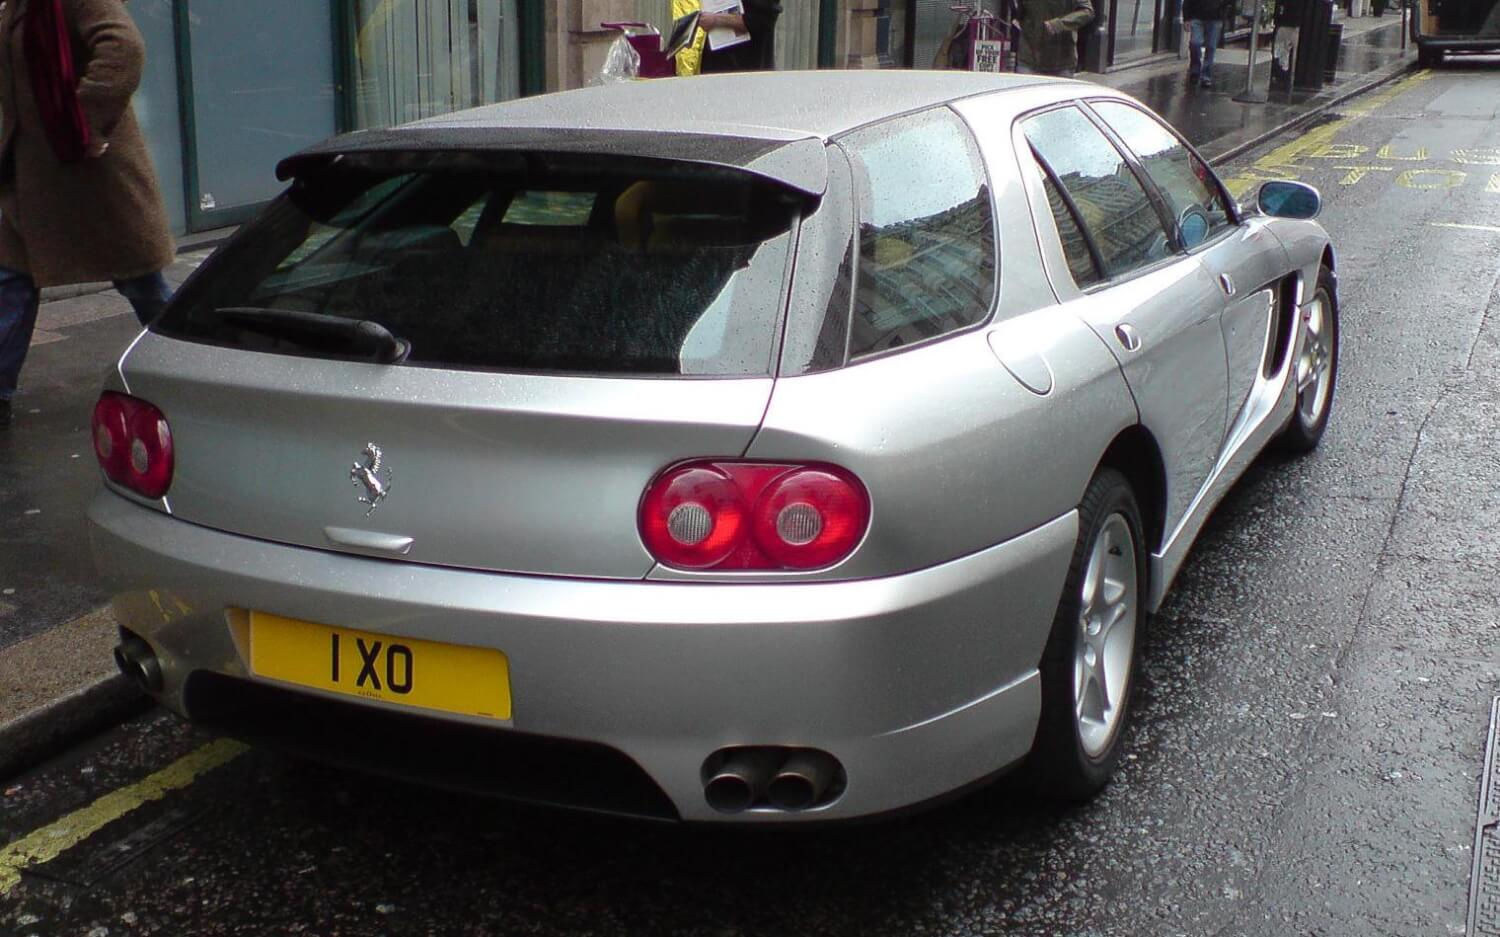 Shooting-Brake-Ferrari-456-GT-Venice